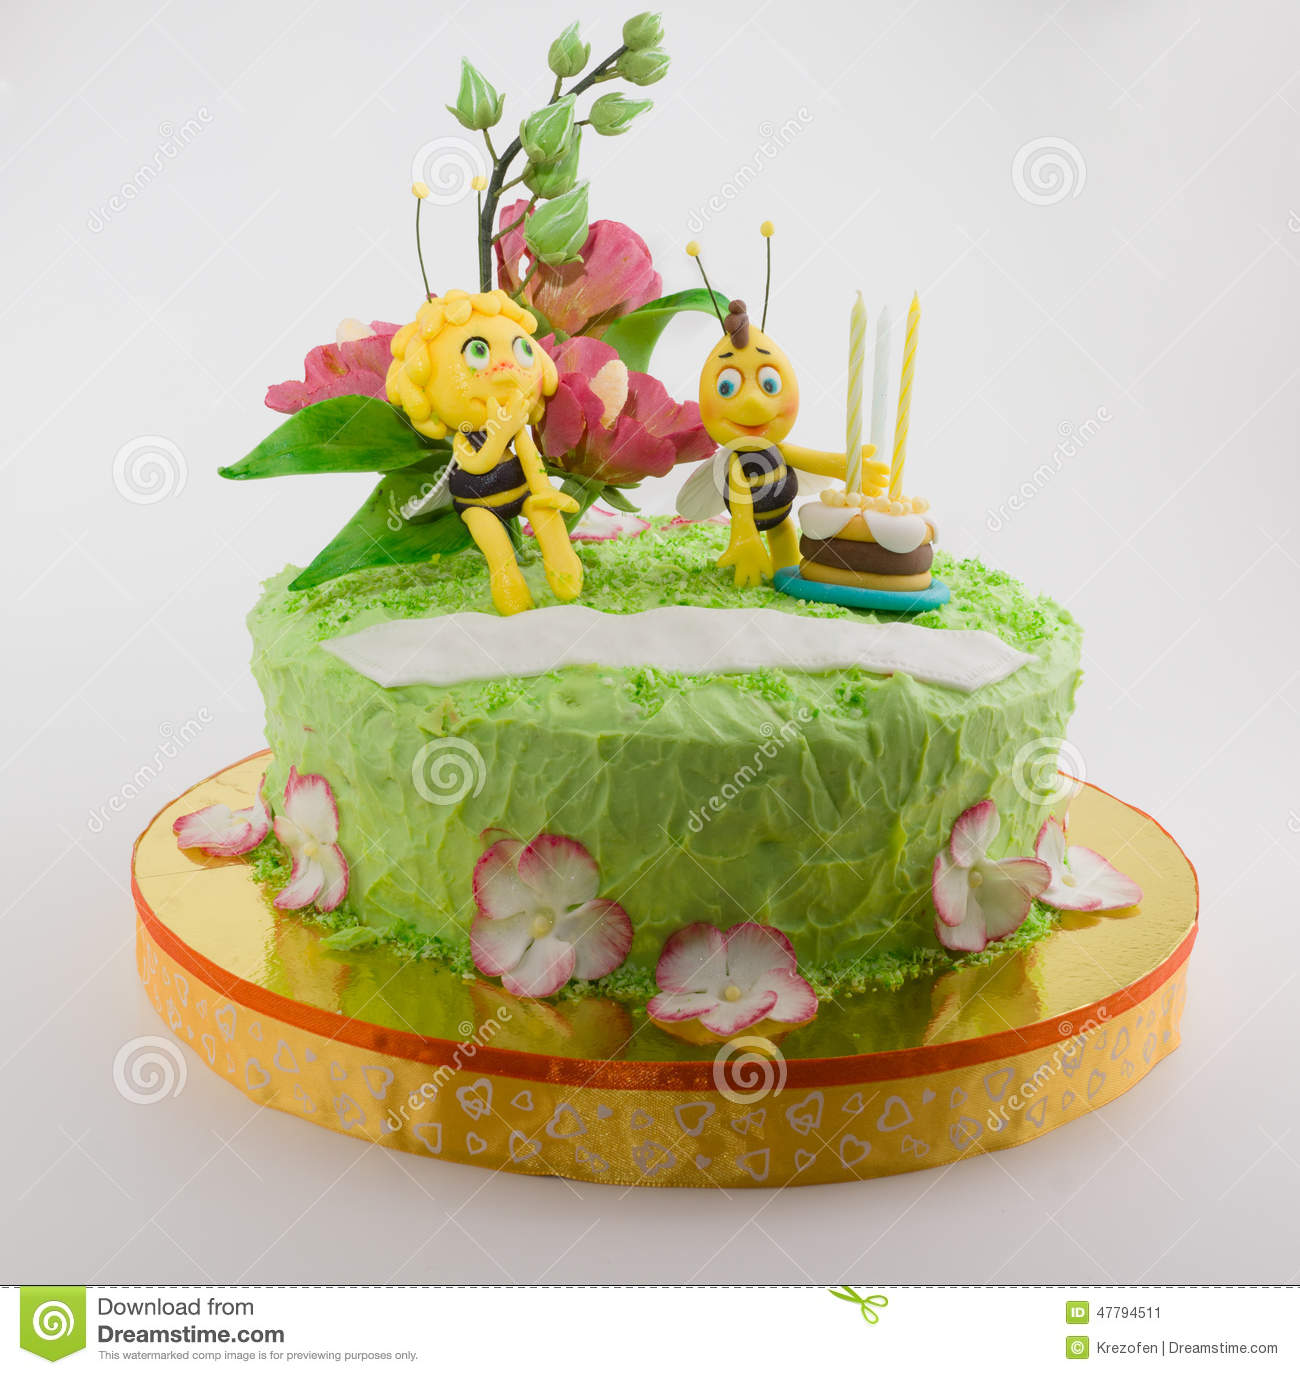 Christmas Fairy Cake Decorating Ideas : Fairy Cake Stock Photo - Image: 47794511